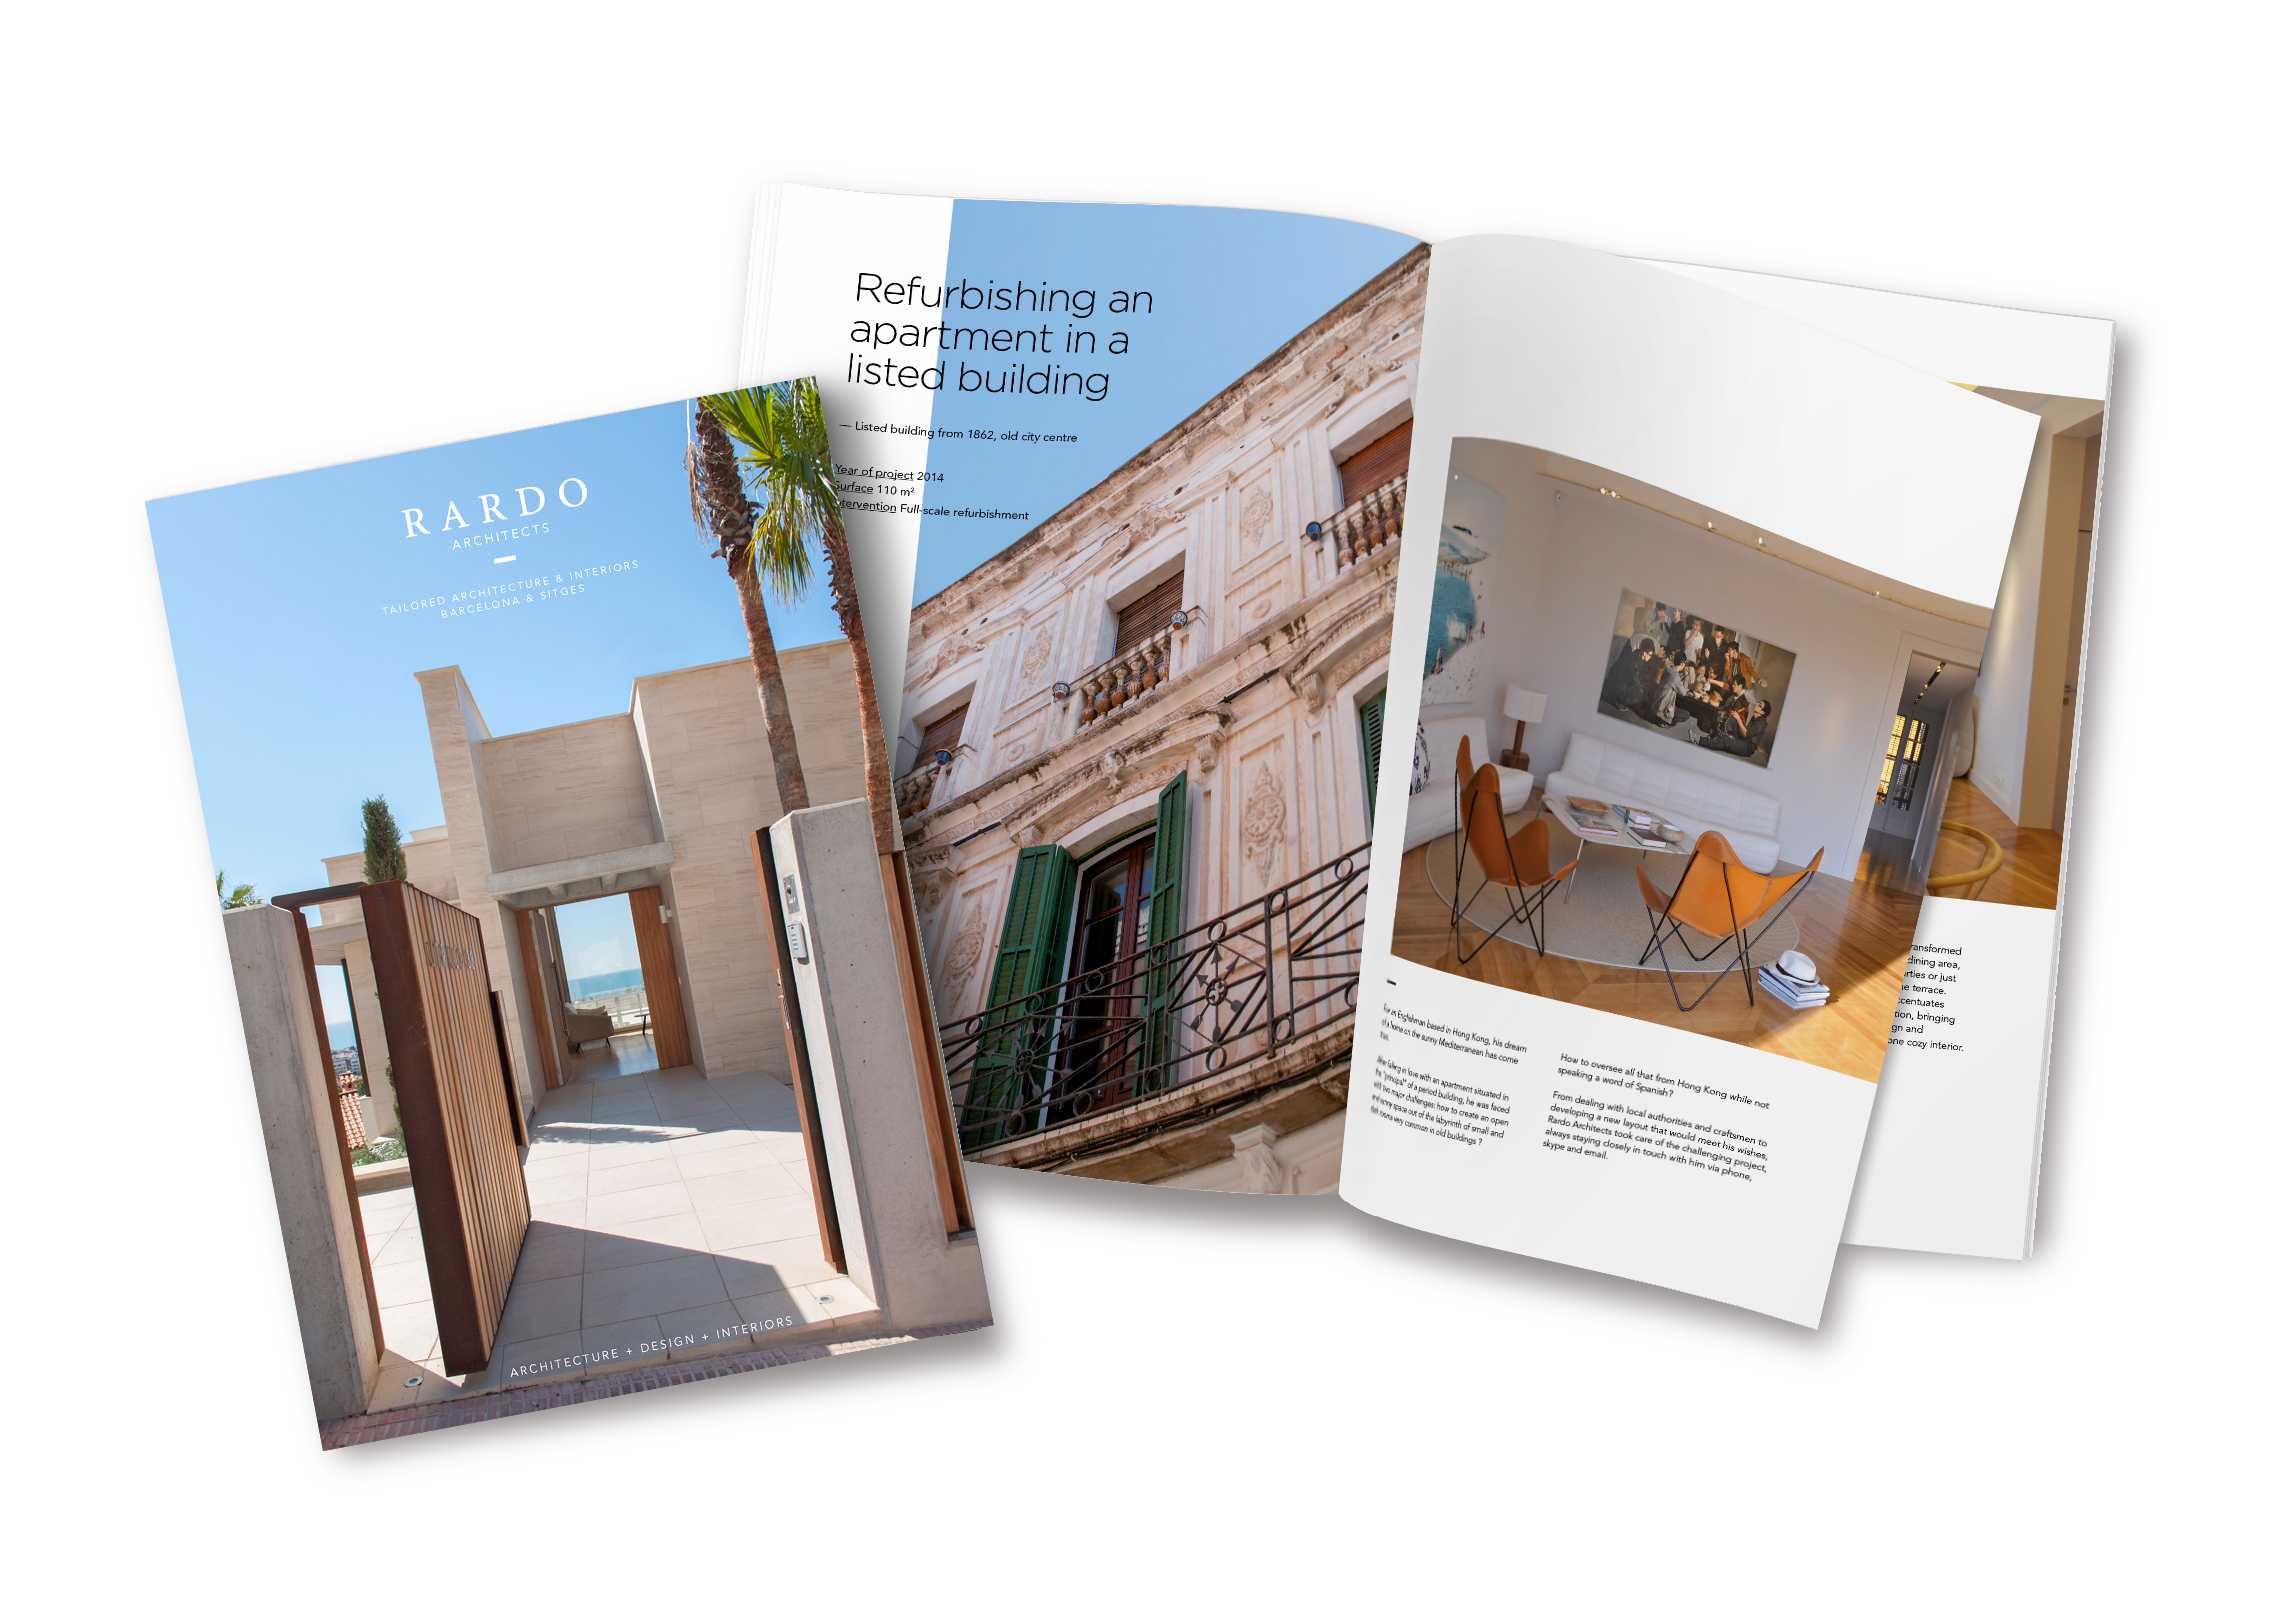 rardo-architects-refurbishments-architecture-in-sitges-and-barcelona-free-brochure-modern-design-ideas